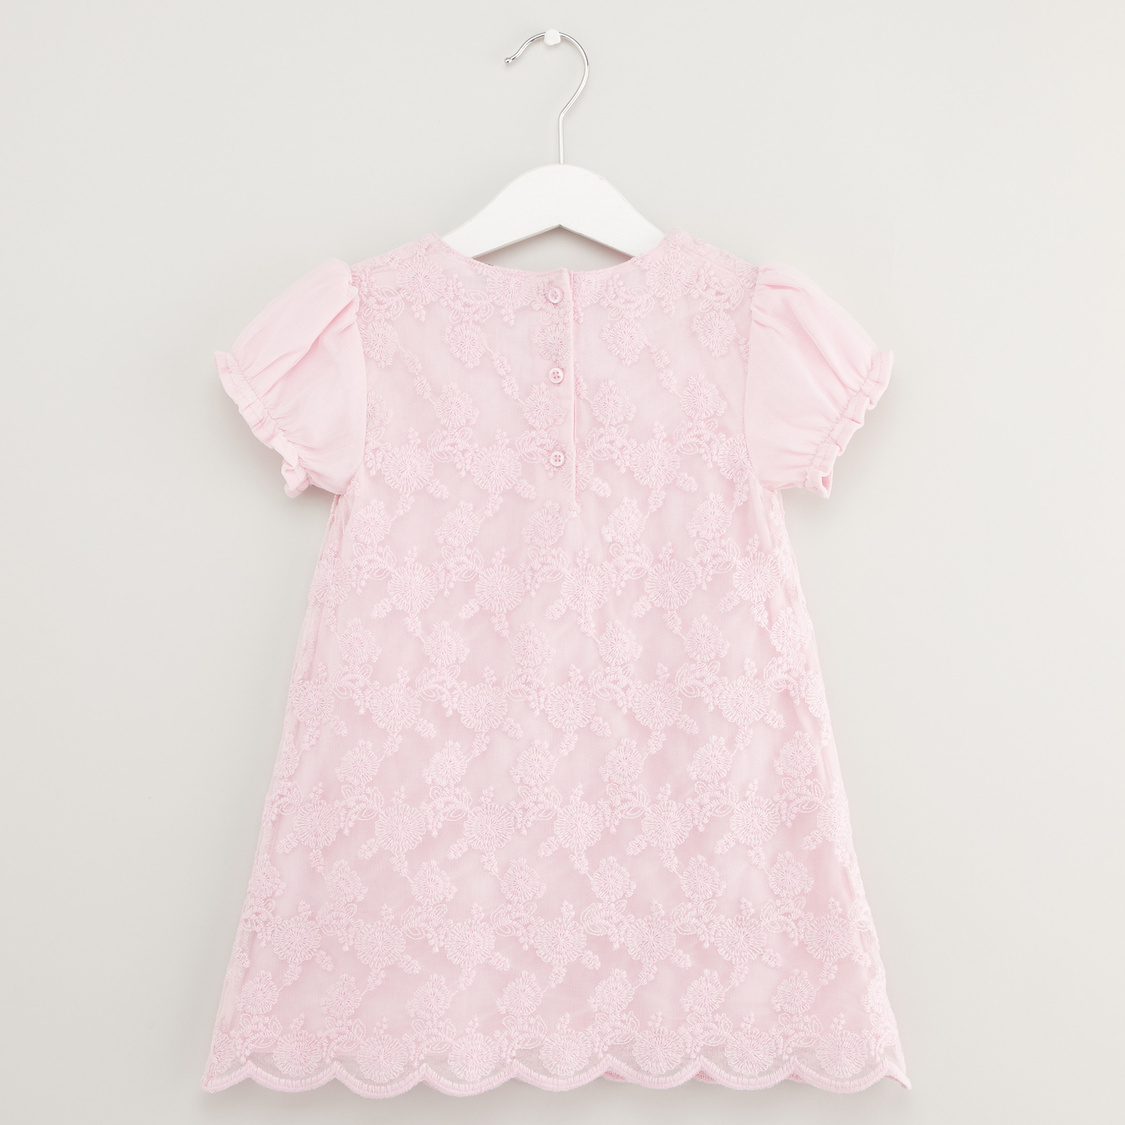 Textured A-line Round Neck Dress with Short Sleeves